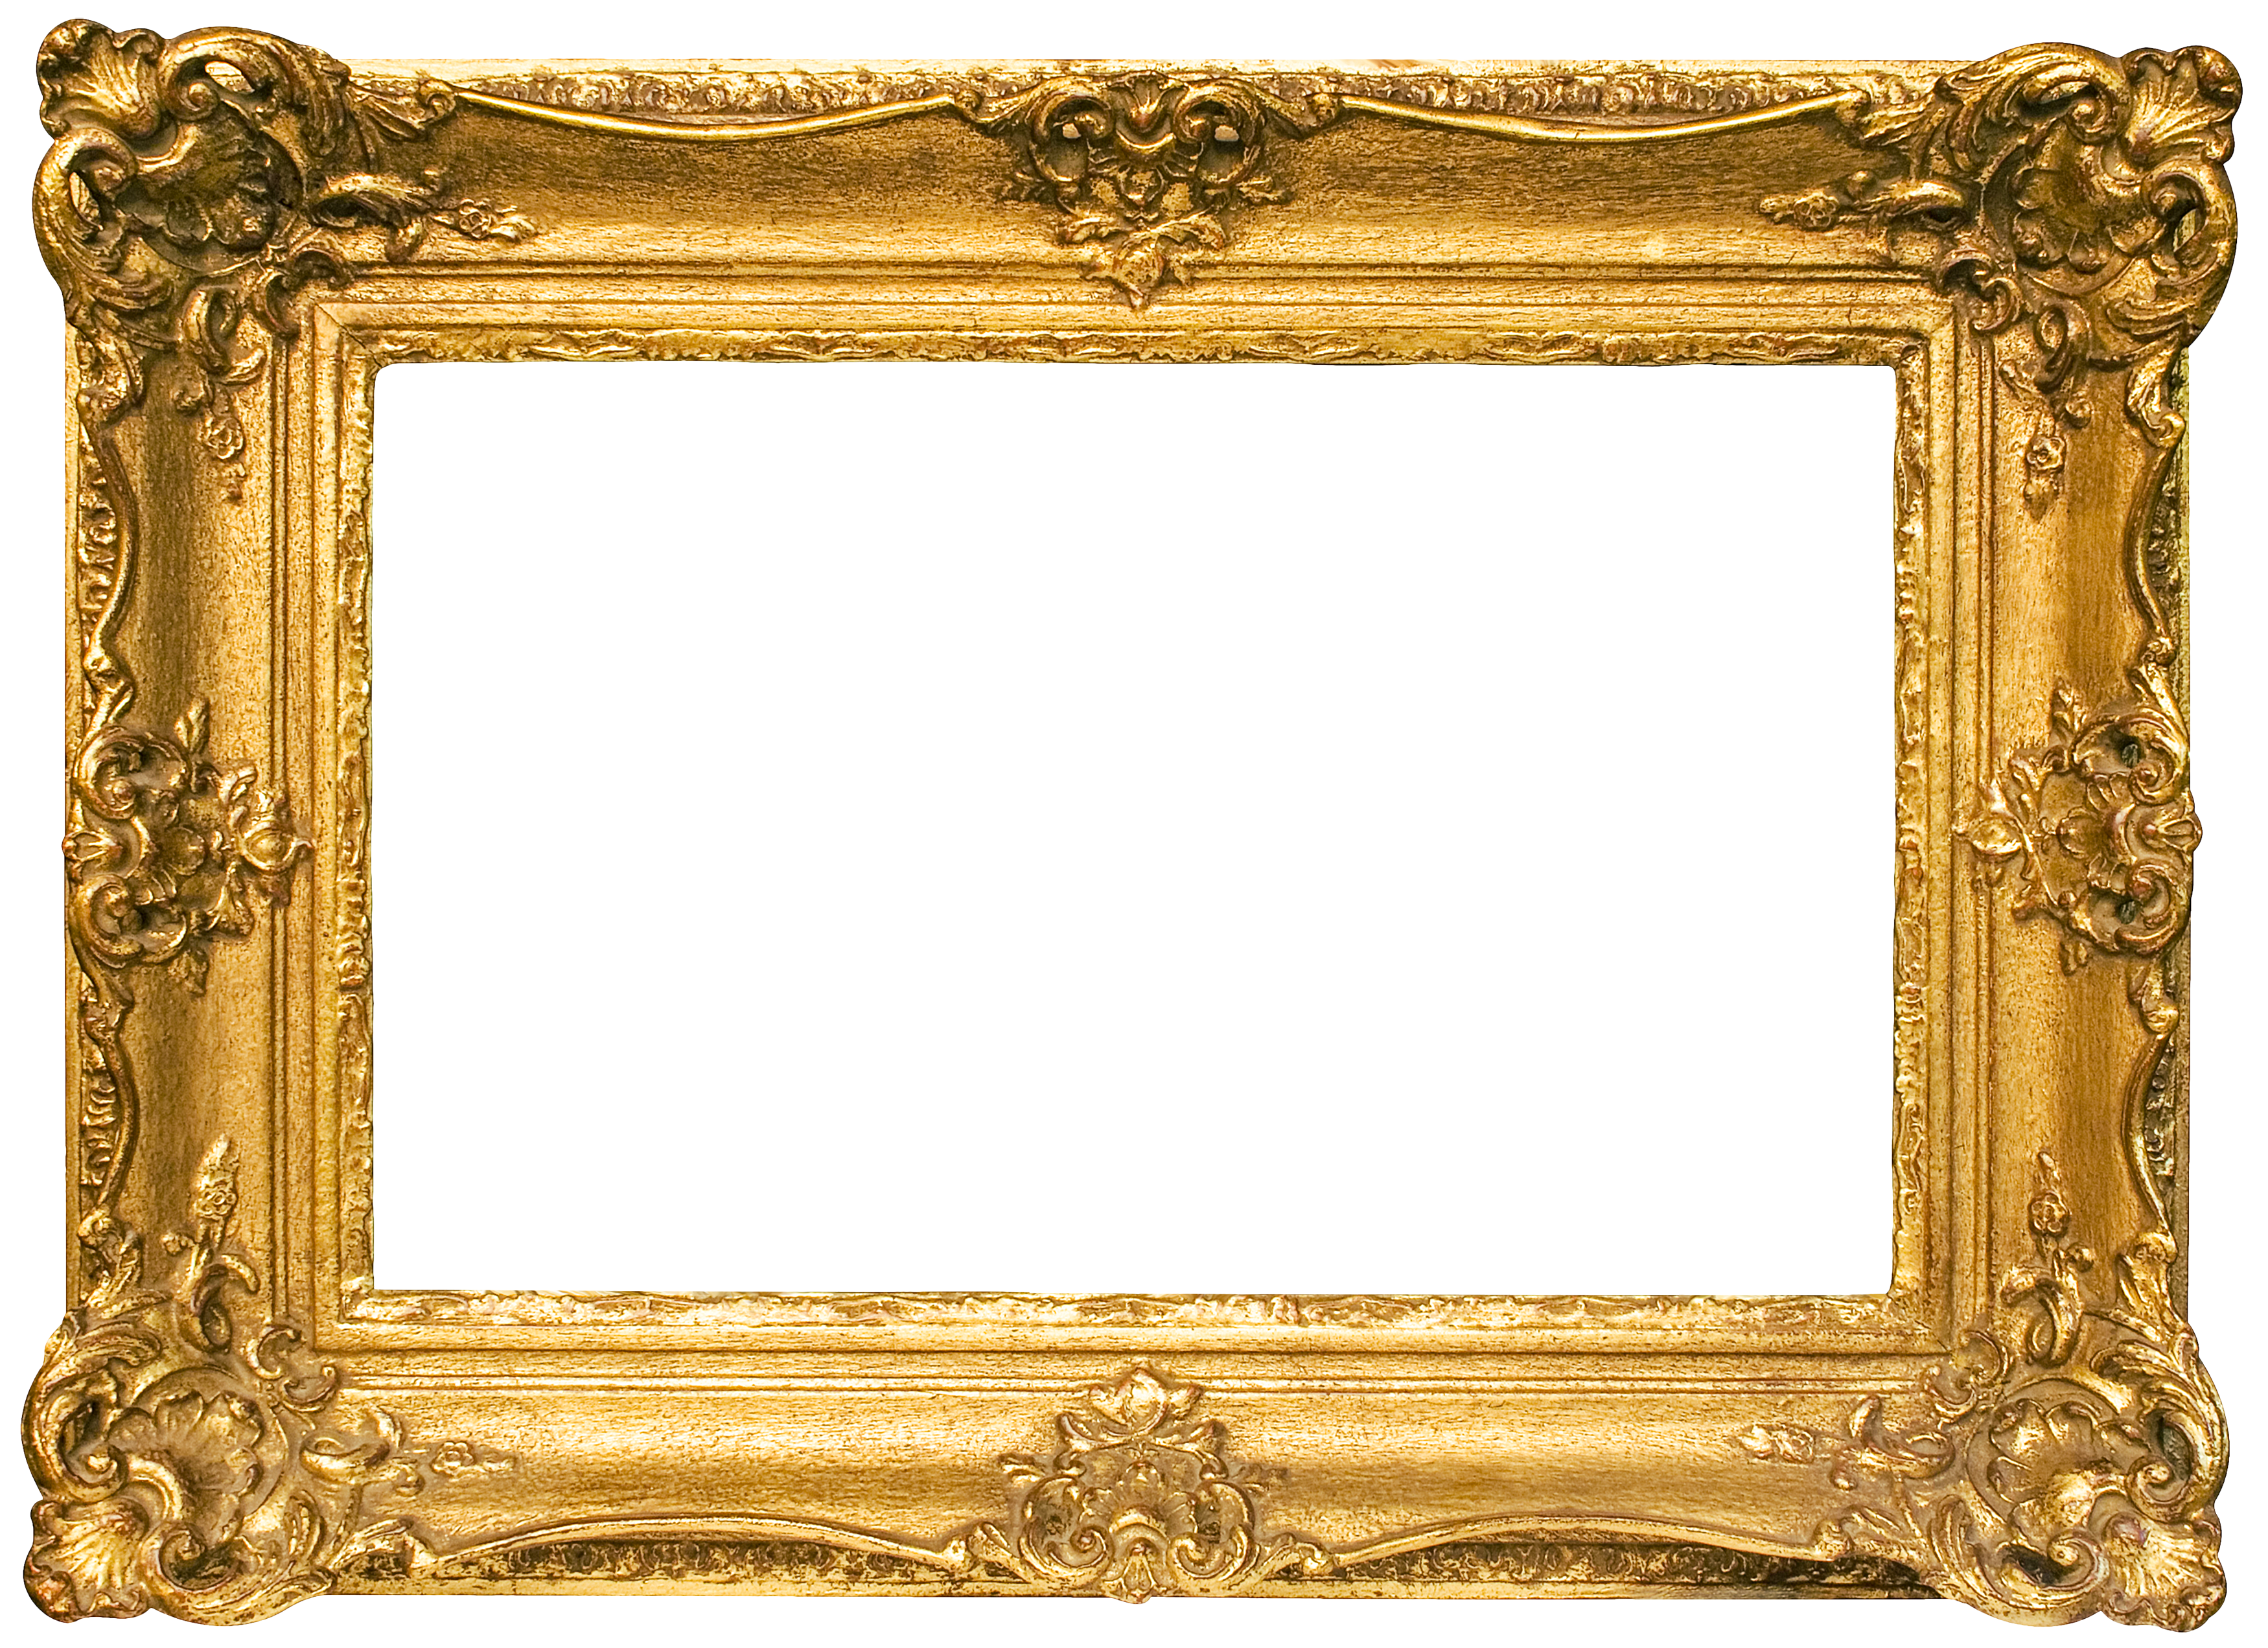 Classic Gold Frame Transparent PNG Image.